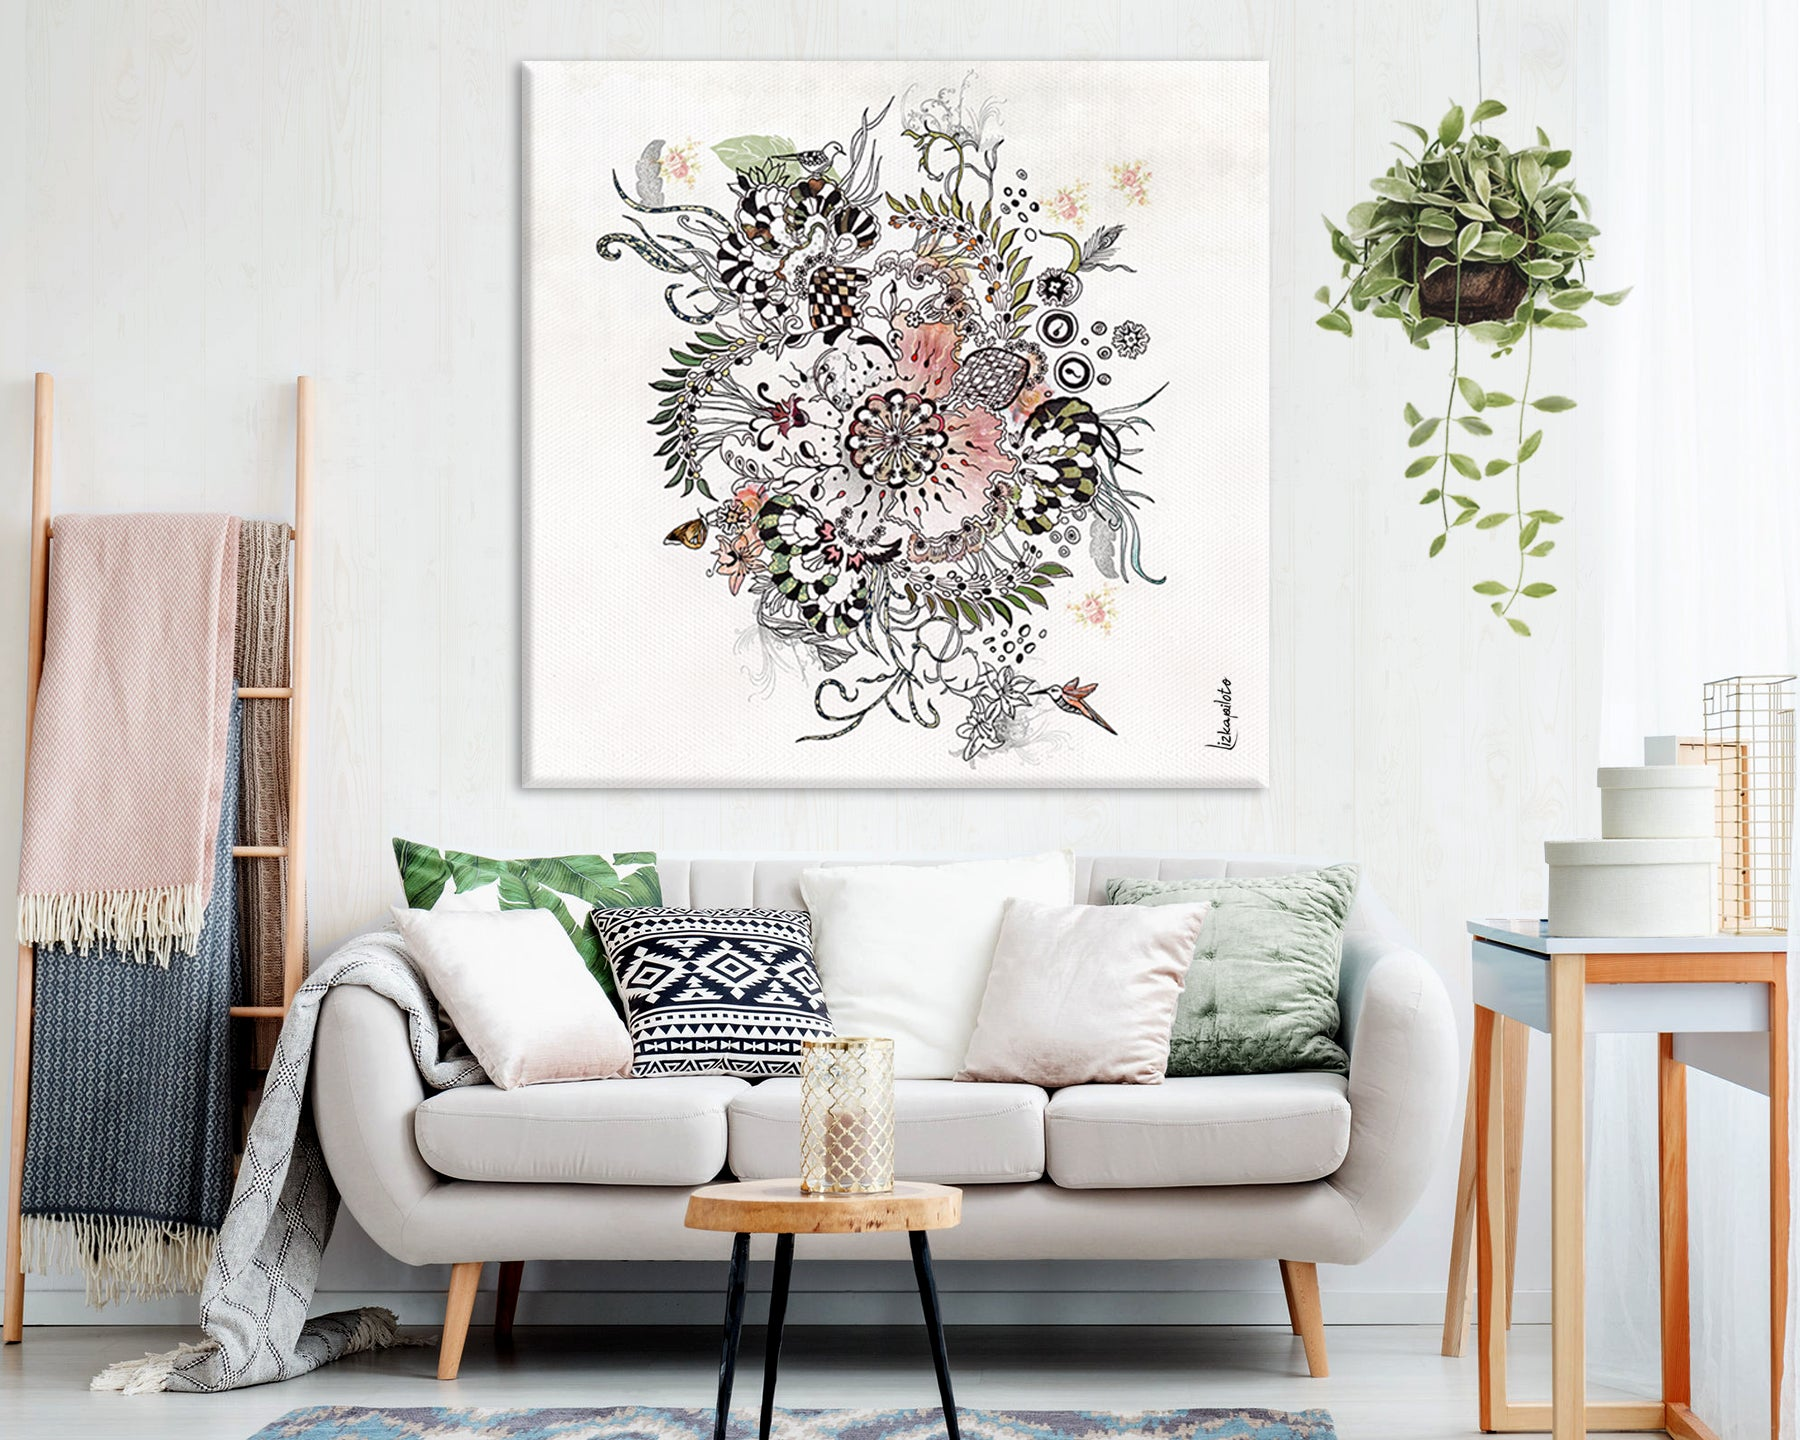 Large canvas with mandala painting in a modern living room above sofa with pillows